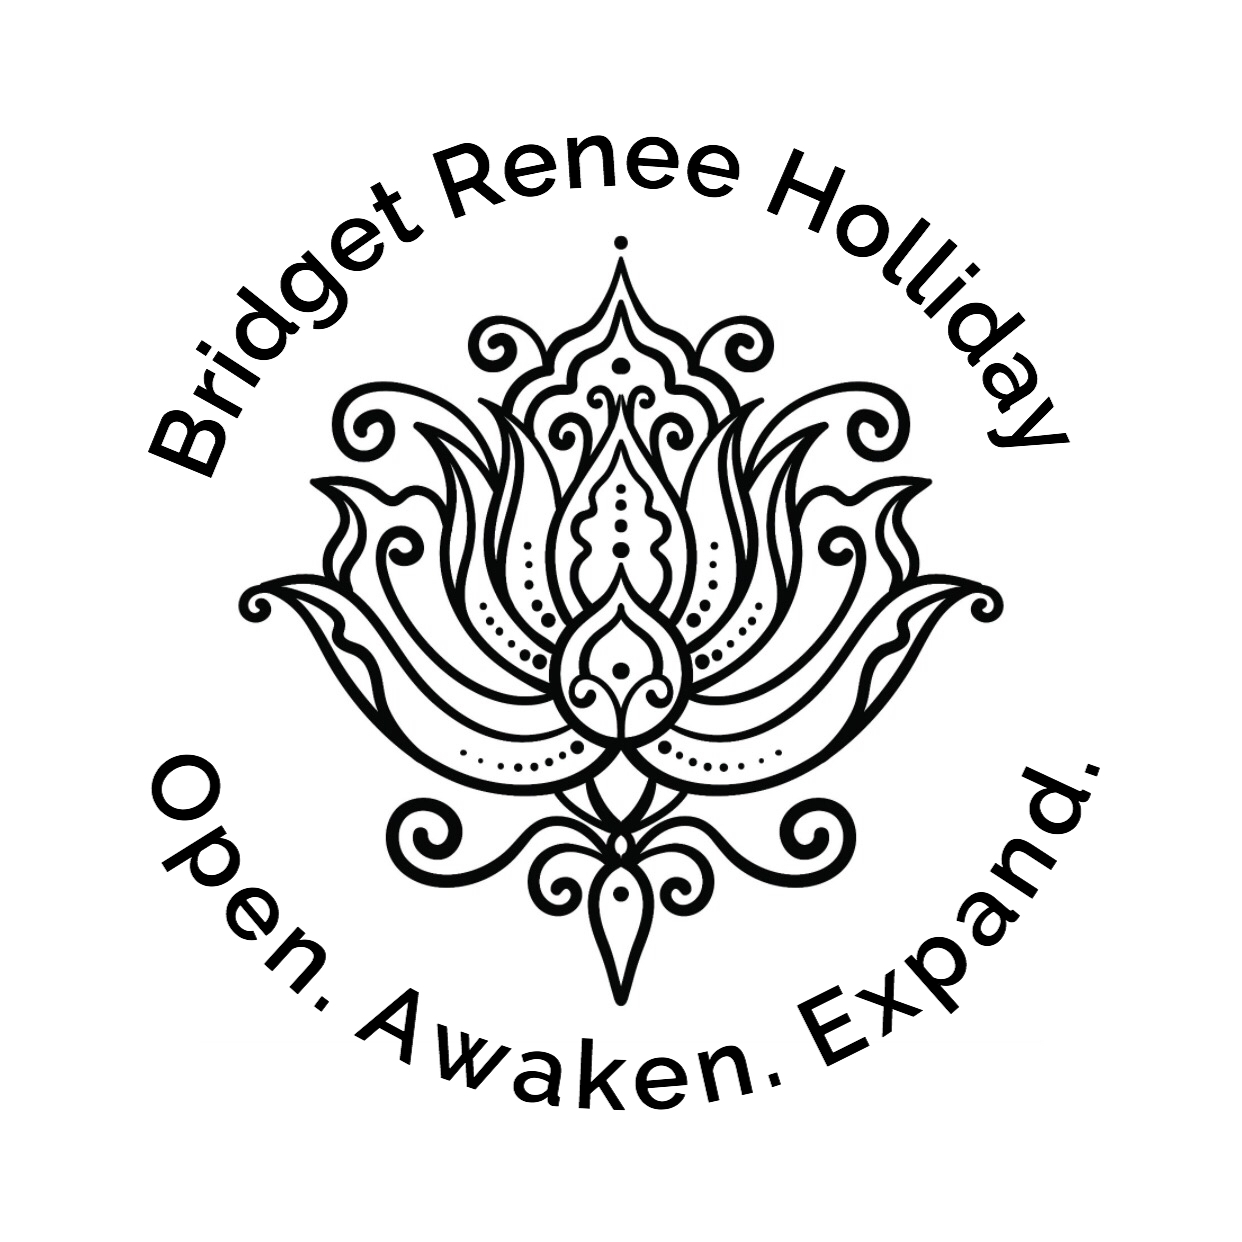 Bridget renee holliday